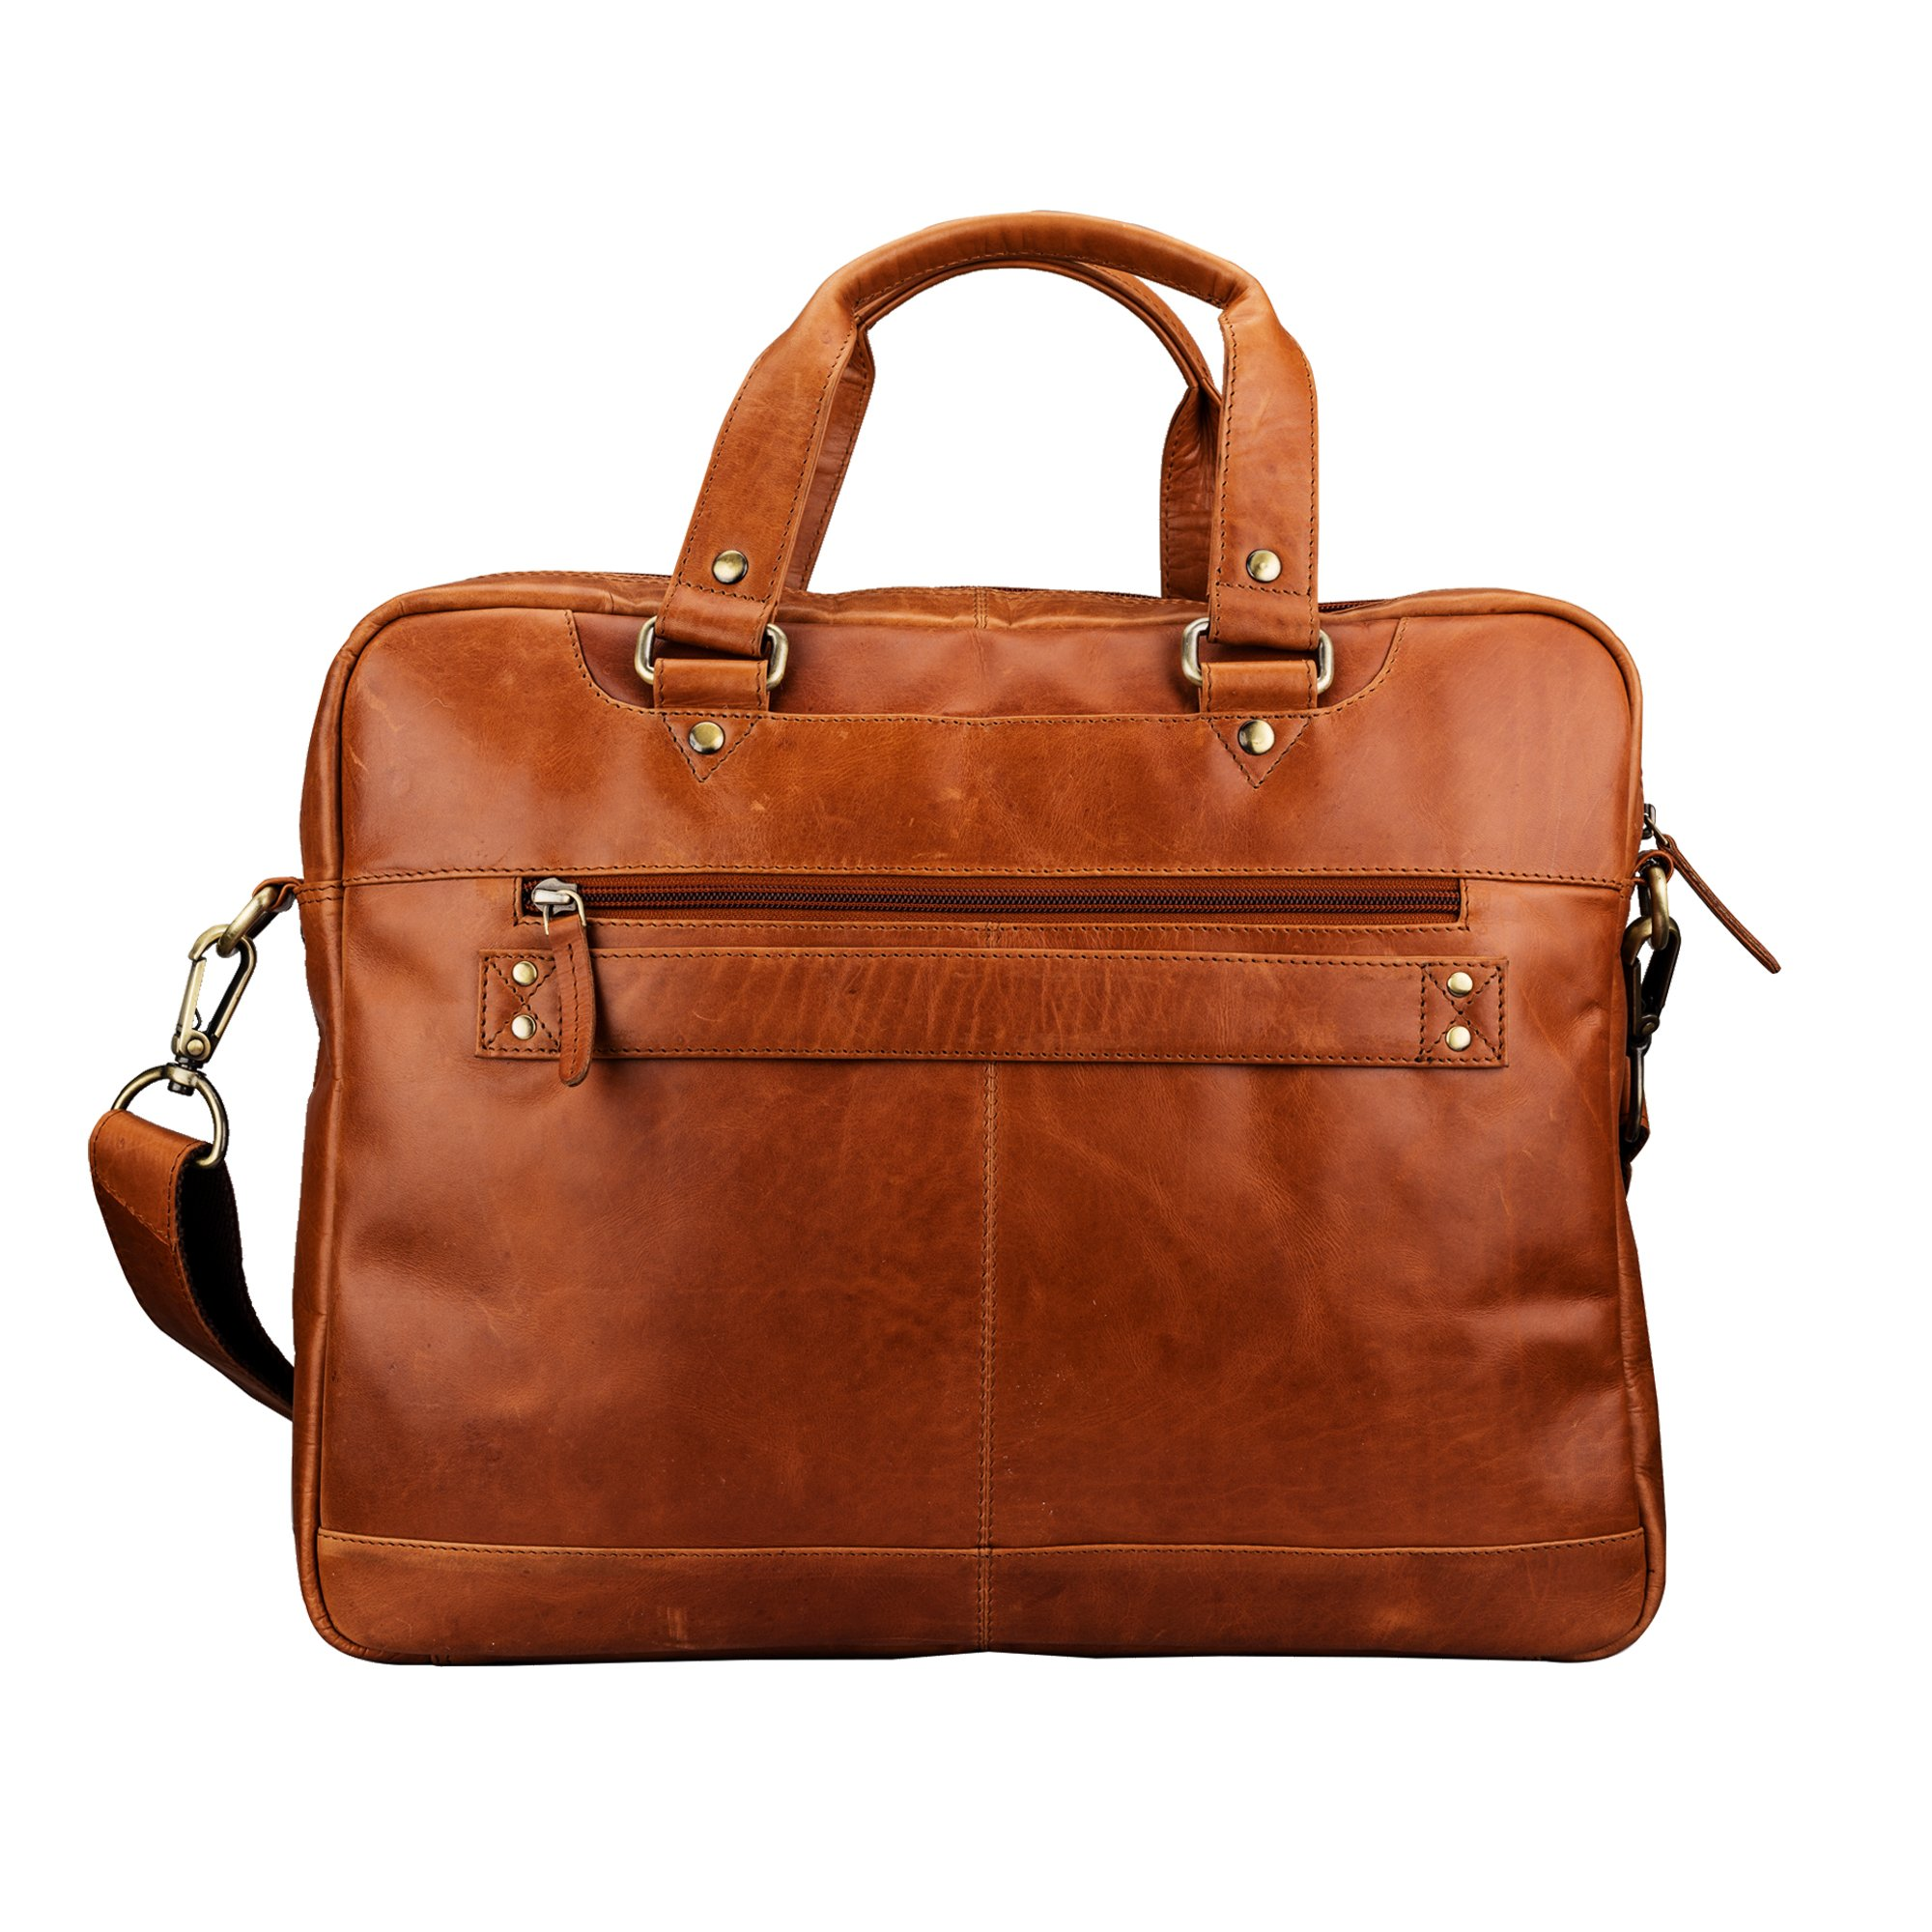 Finelaer Leather Laptop Computer Messenger Zipper Bag Brown with Trolley Sleeve for Men Women by FINELAER (Image #1)